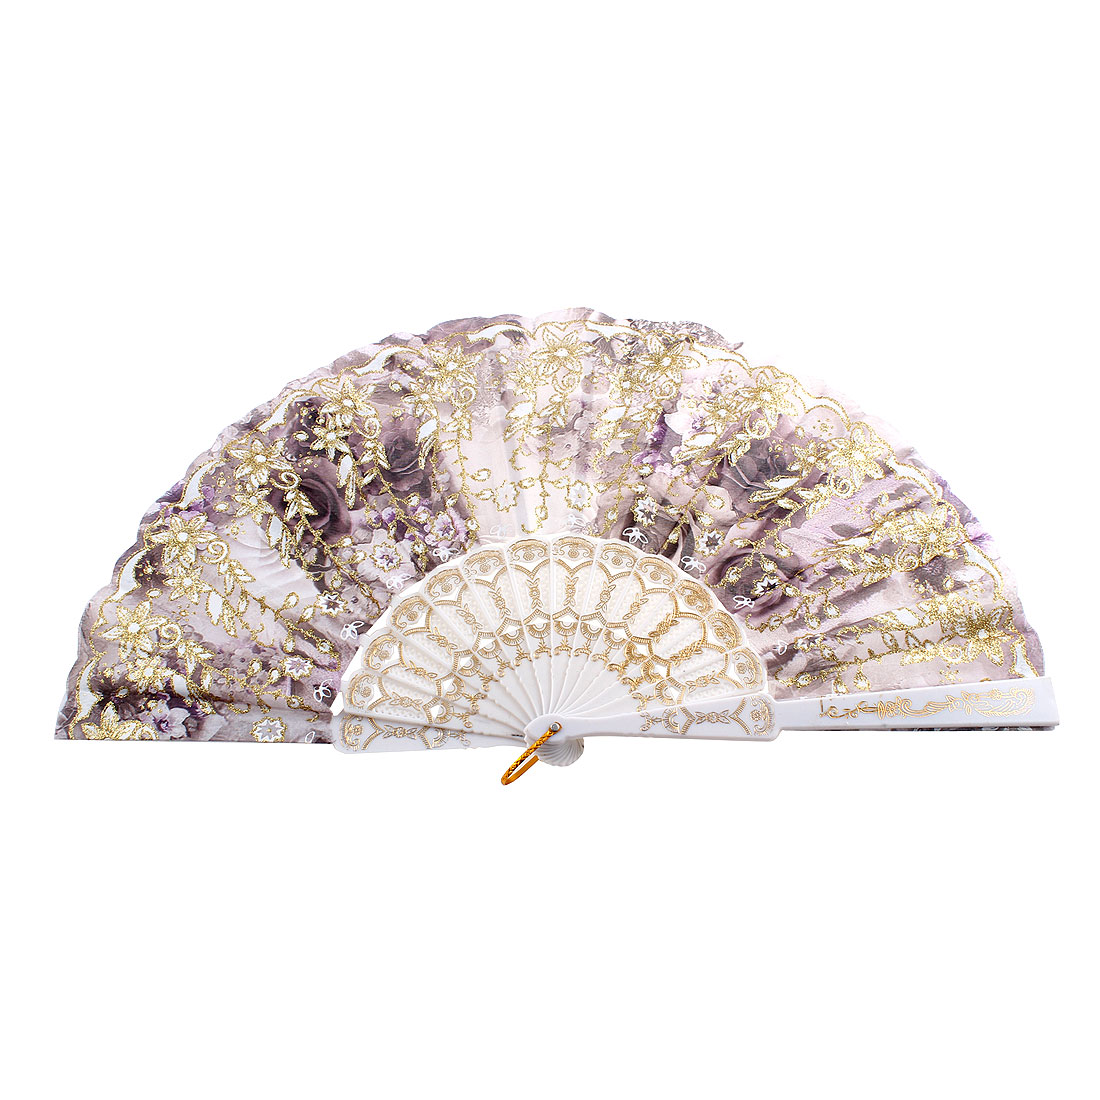 Lady Hanging Ring Glittery Powder Adorn Flower Print Folding Hand Fan Dark Purple